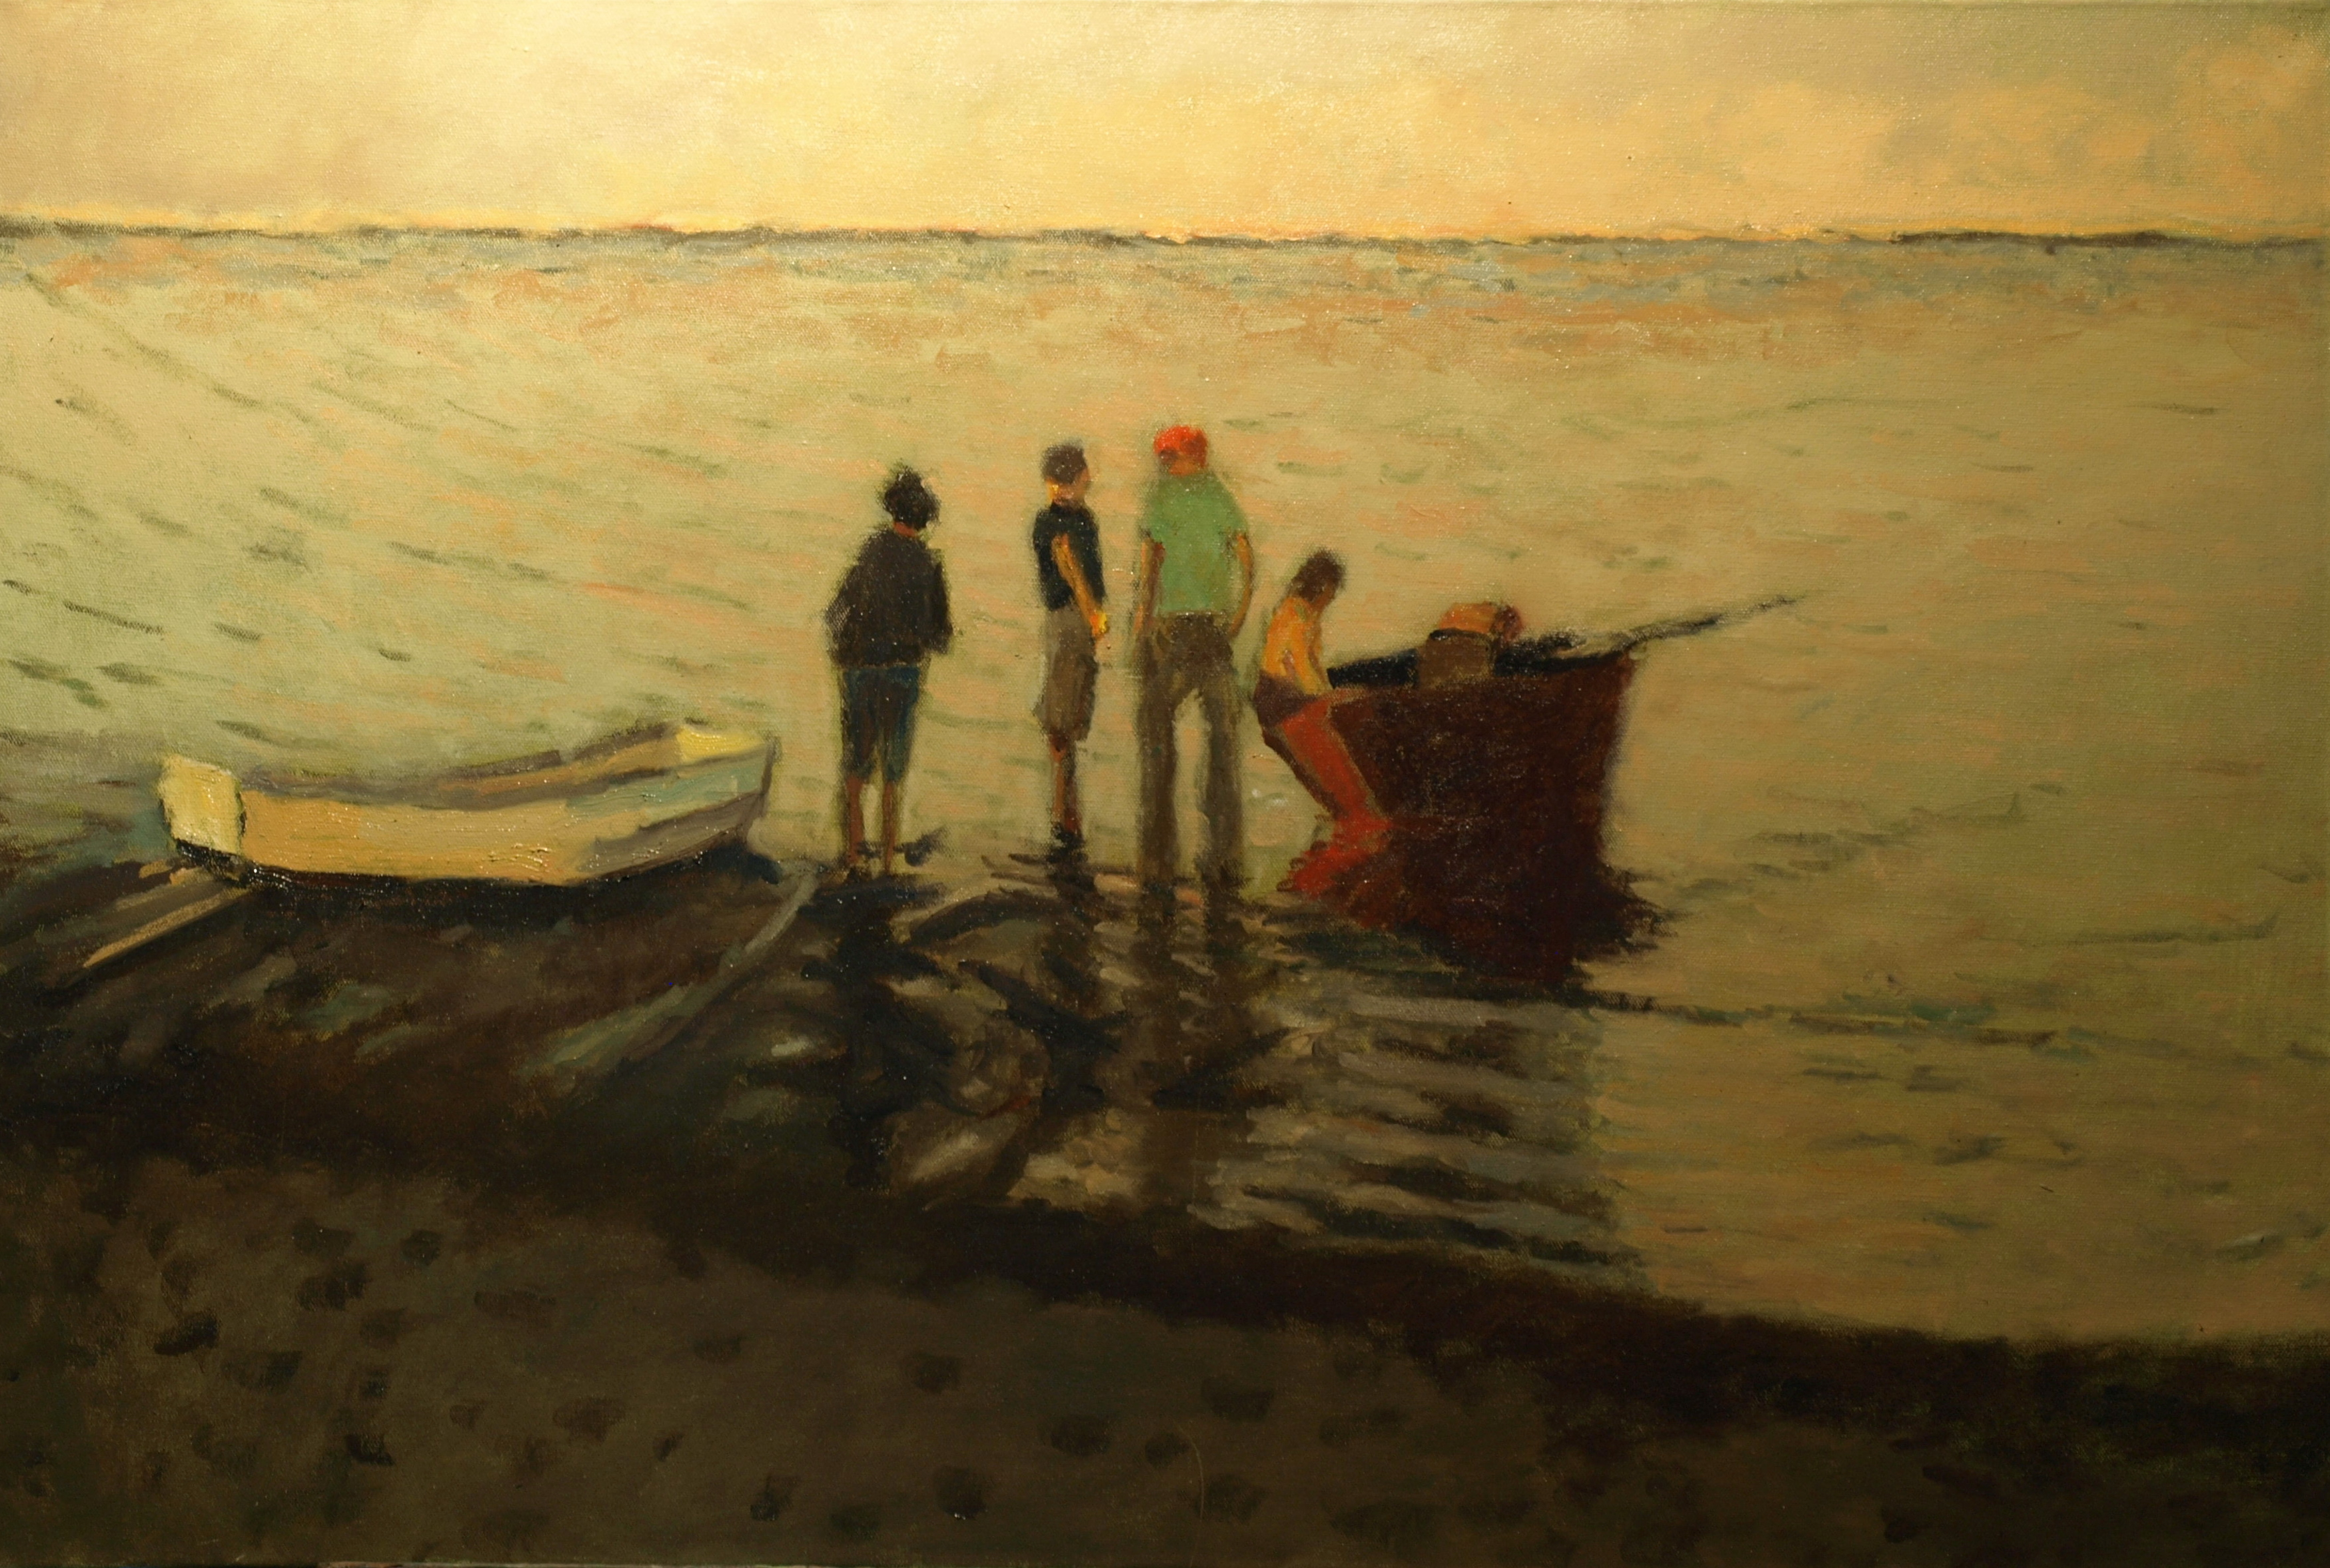 Shoreline Gathering, Oil on Canvas, 24 x 36 Inches, by Richard Stalter, $1200